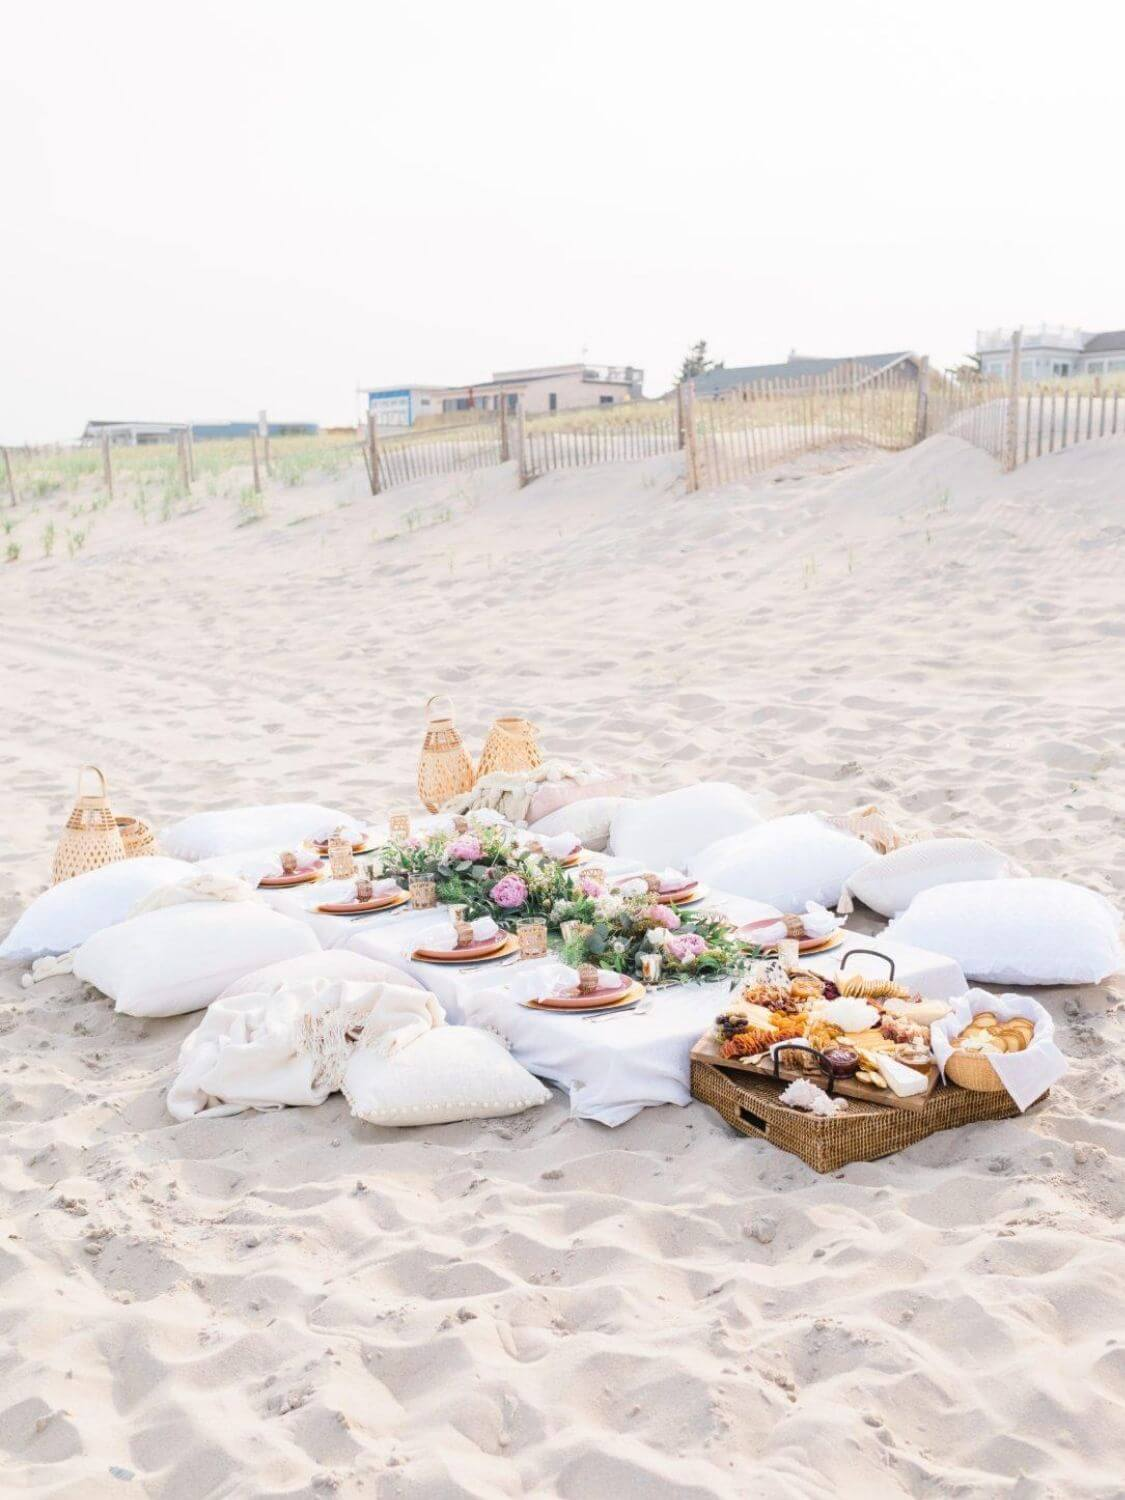 Photo Credit - amybelievesinpink.com // I'm craving some sunshine. And I'm currently daydreaming of a beach picnic! If you share in this daydream, here's some serious beach picnic inspo for ya! #tulipandsage #beachpicnic #beachpicnicaesthetic #beachpicnicideas